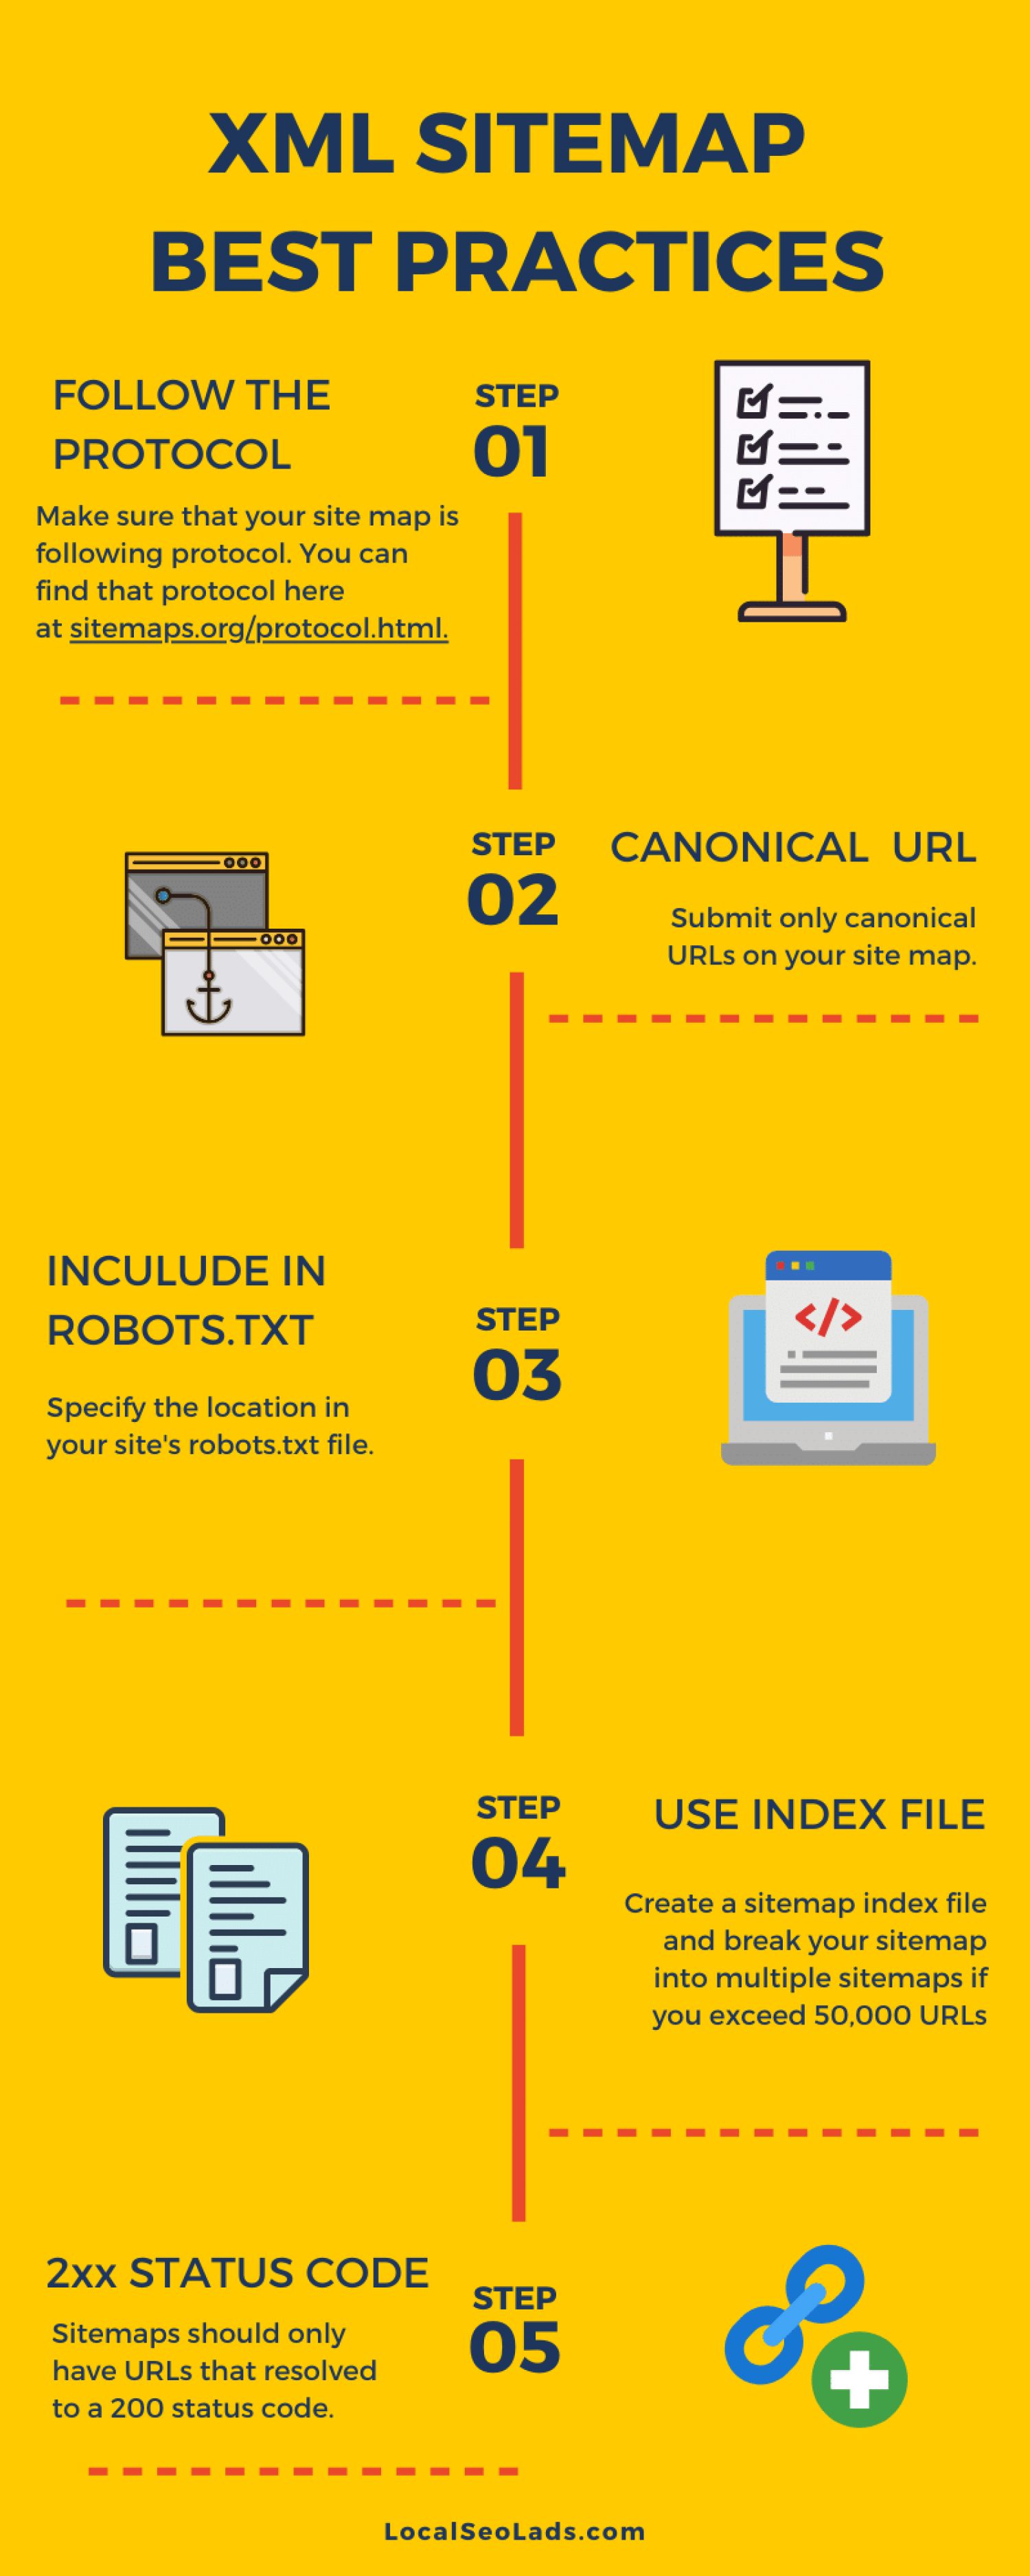 5 Best Practices for Sitemaps Infographic